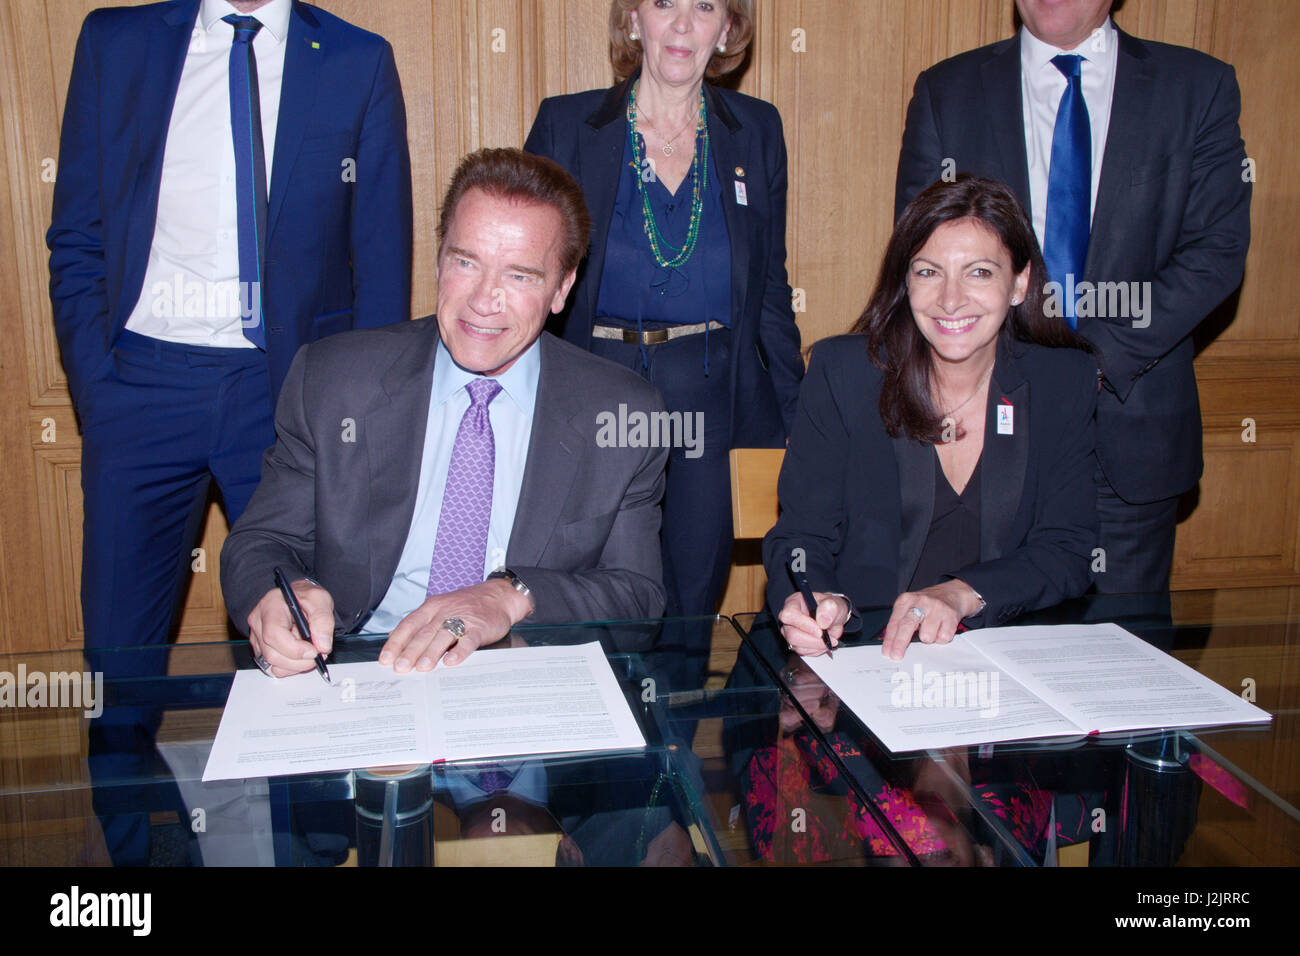 Paris, France. 28th April, 2017. Anne Hidalgo, Mayor of Paris and Arnold Schwarzenegger, the founding President - Stock Image